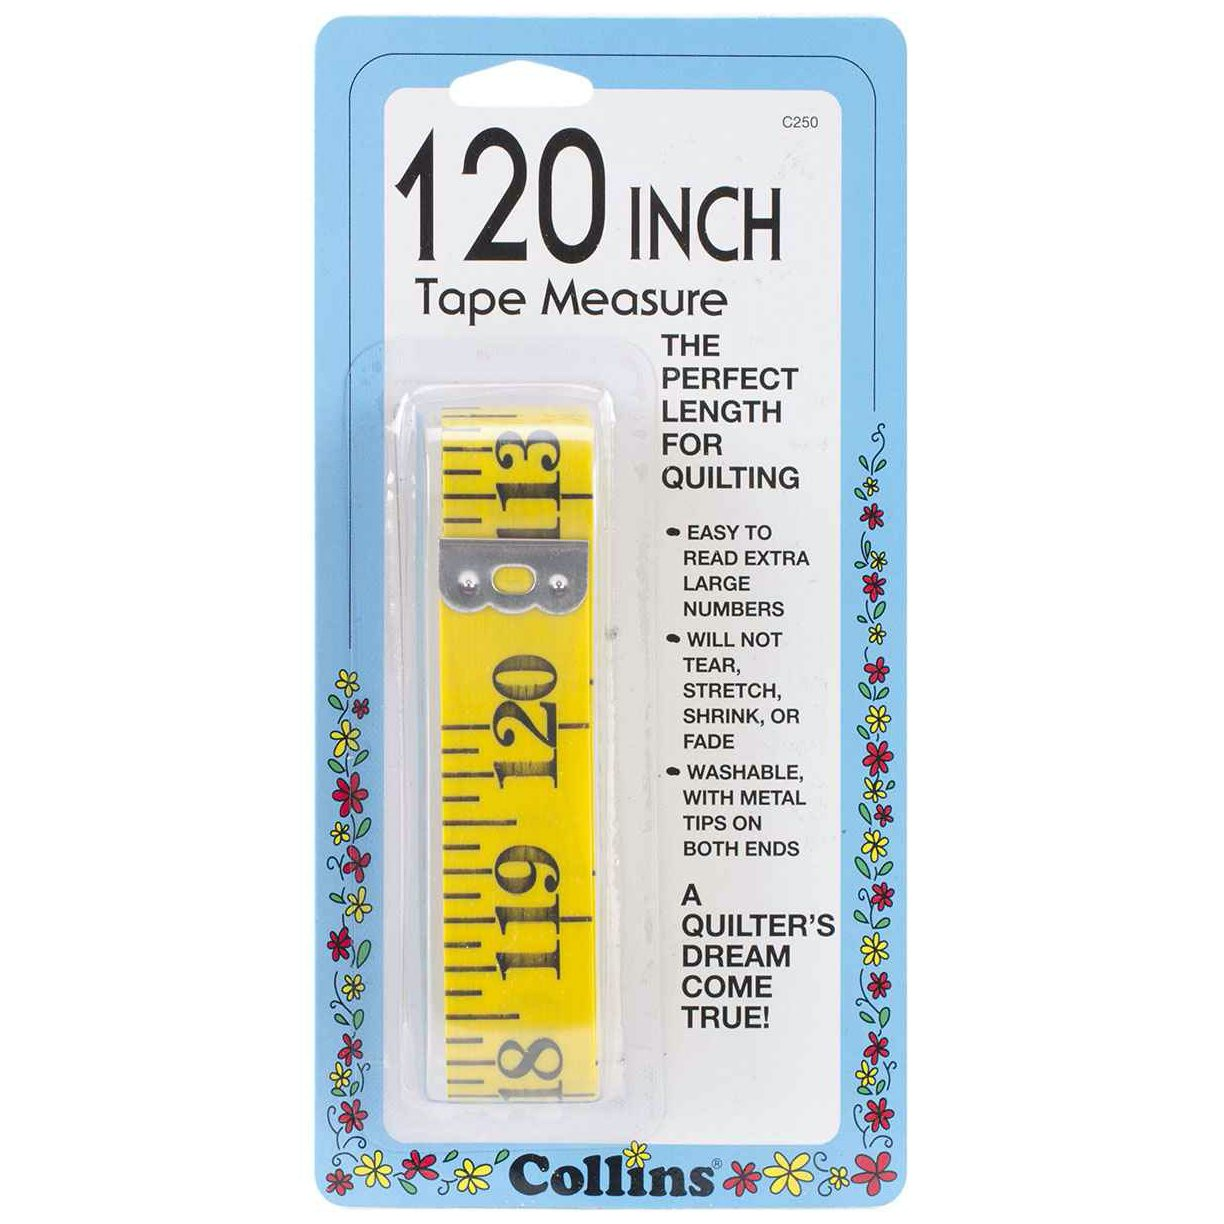 Collins Tape Measure - 120